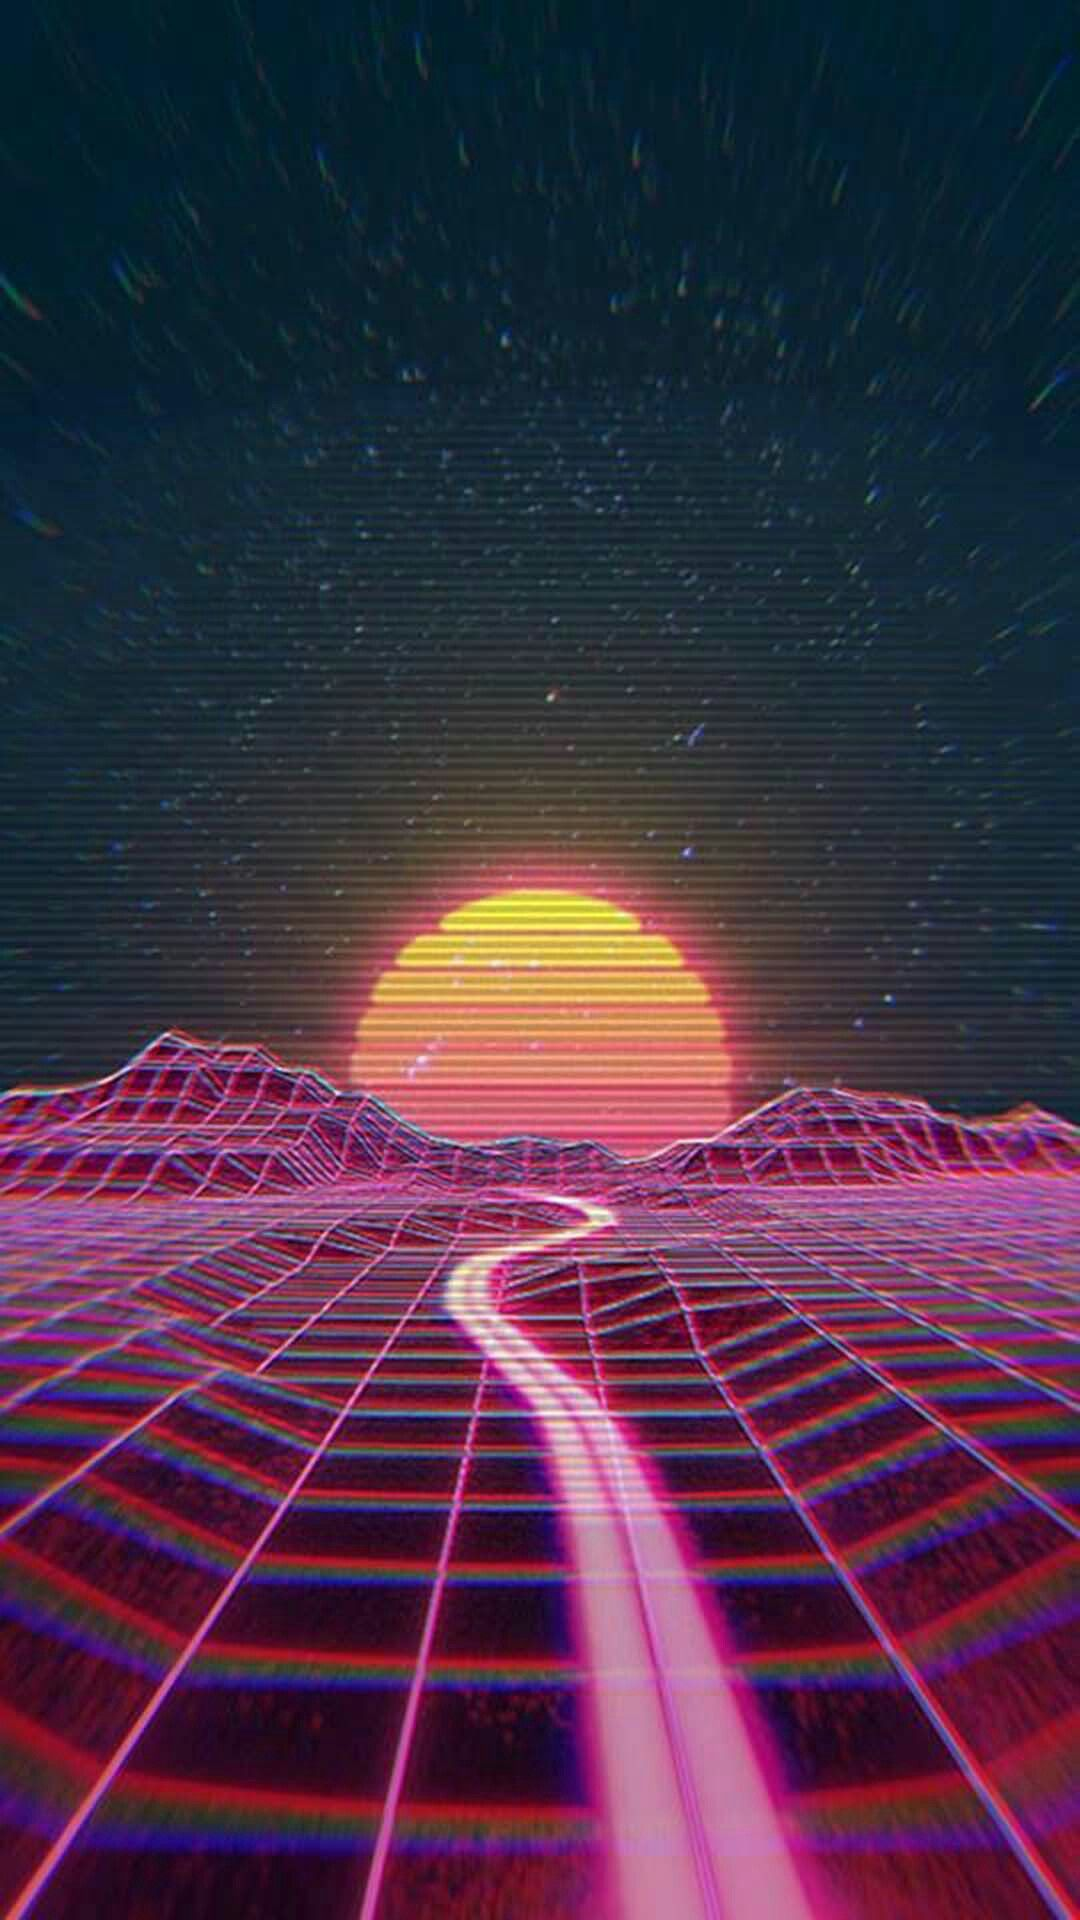 Pin By Christopher On K Vaporwave Wallpaper Aesthetic Wallpapers Aesthetic Space